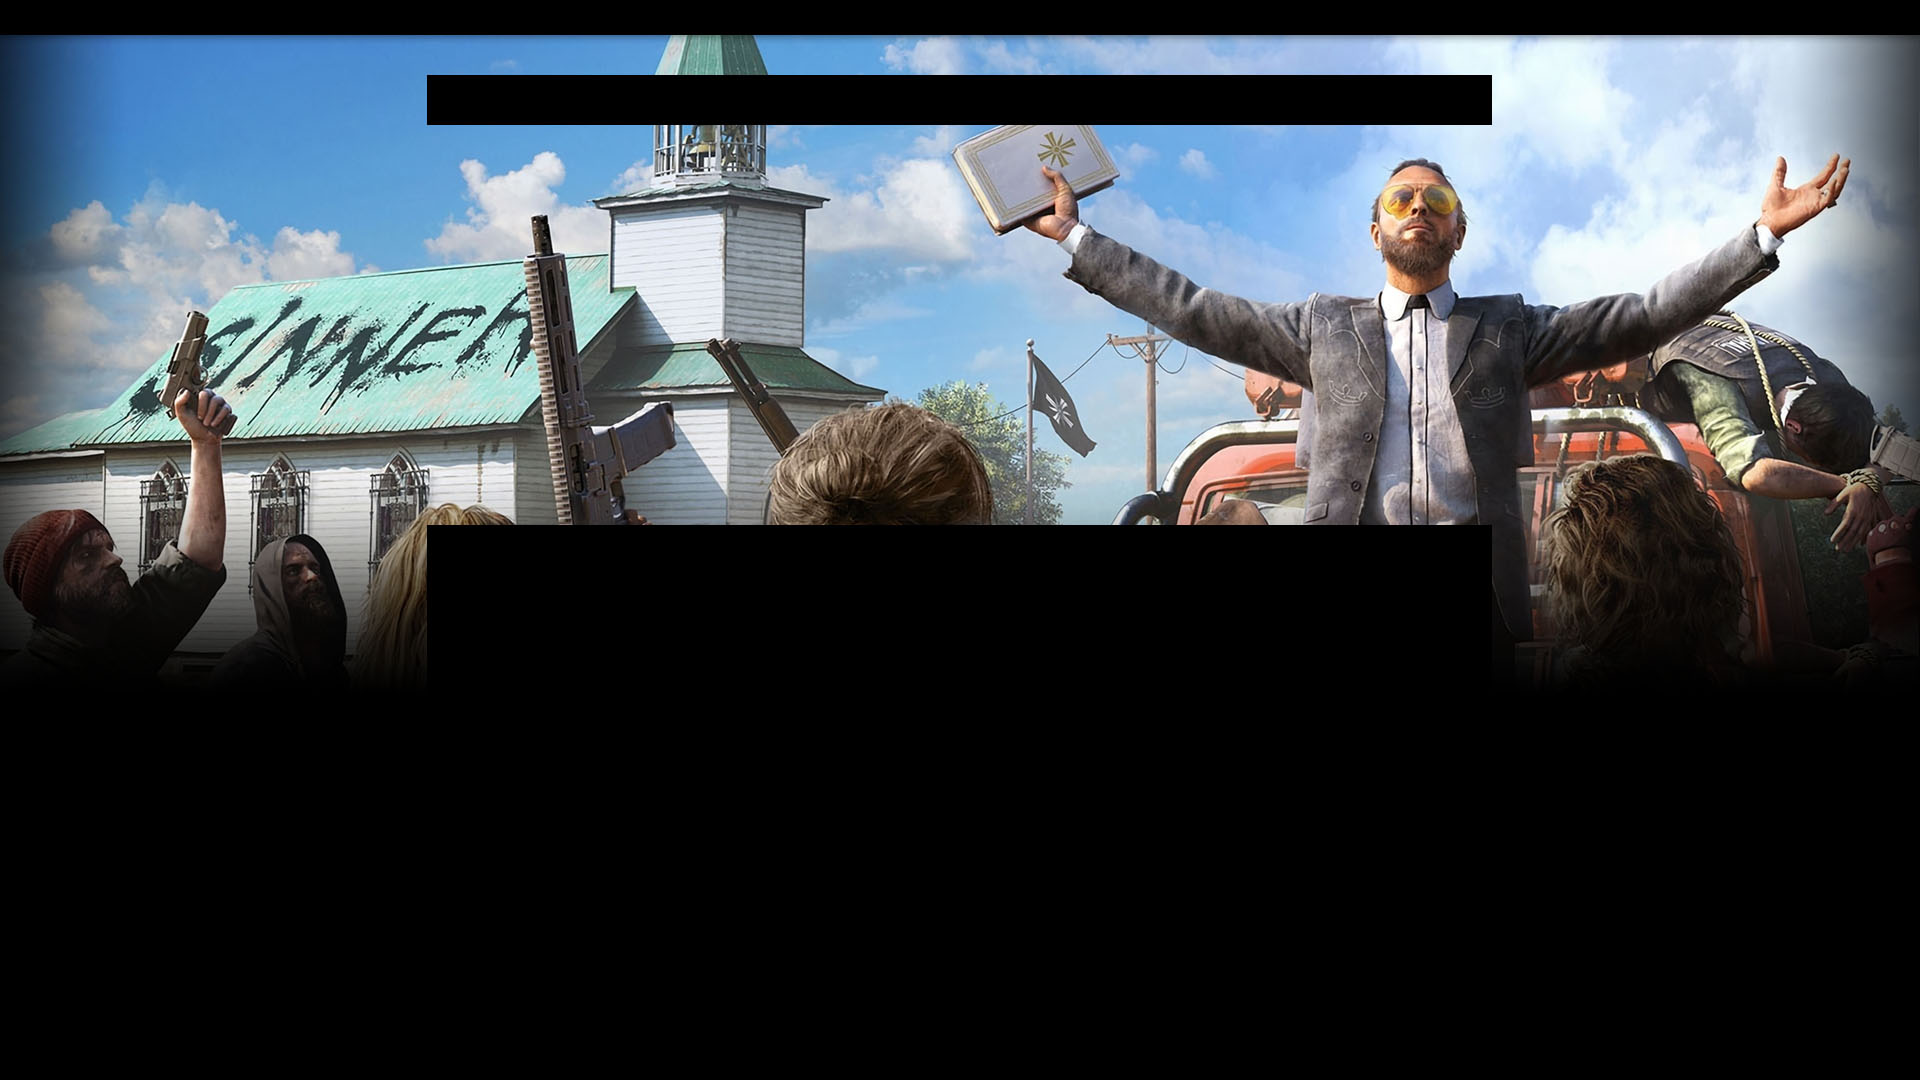 Far Cry 5 [PC/PS4/Xbox One] video game